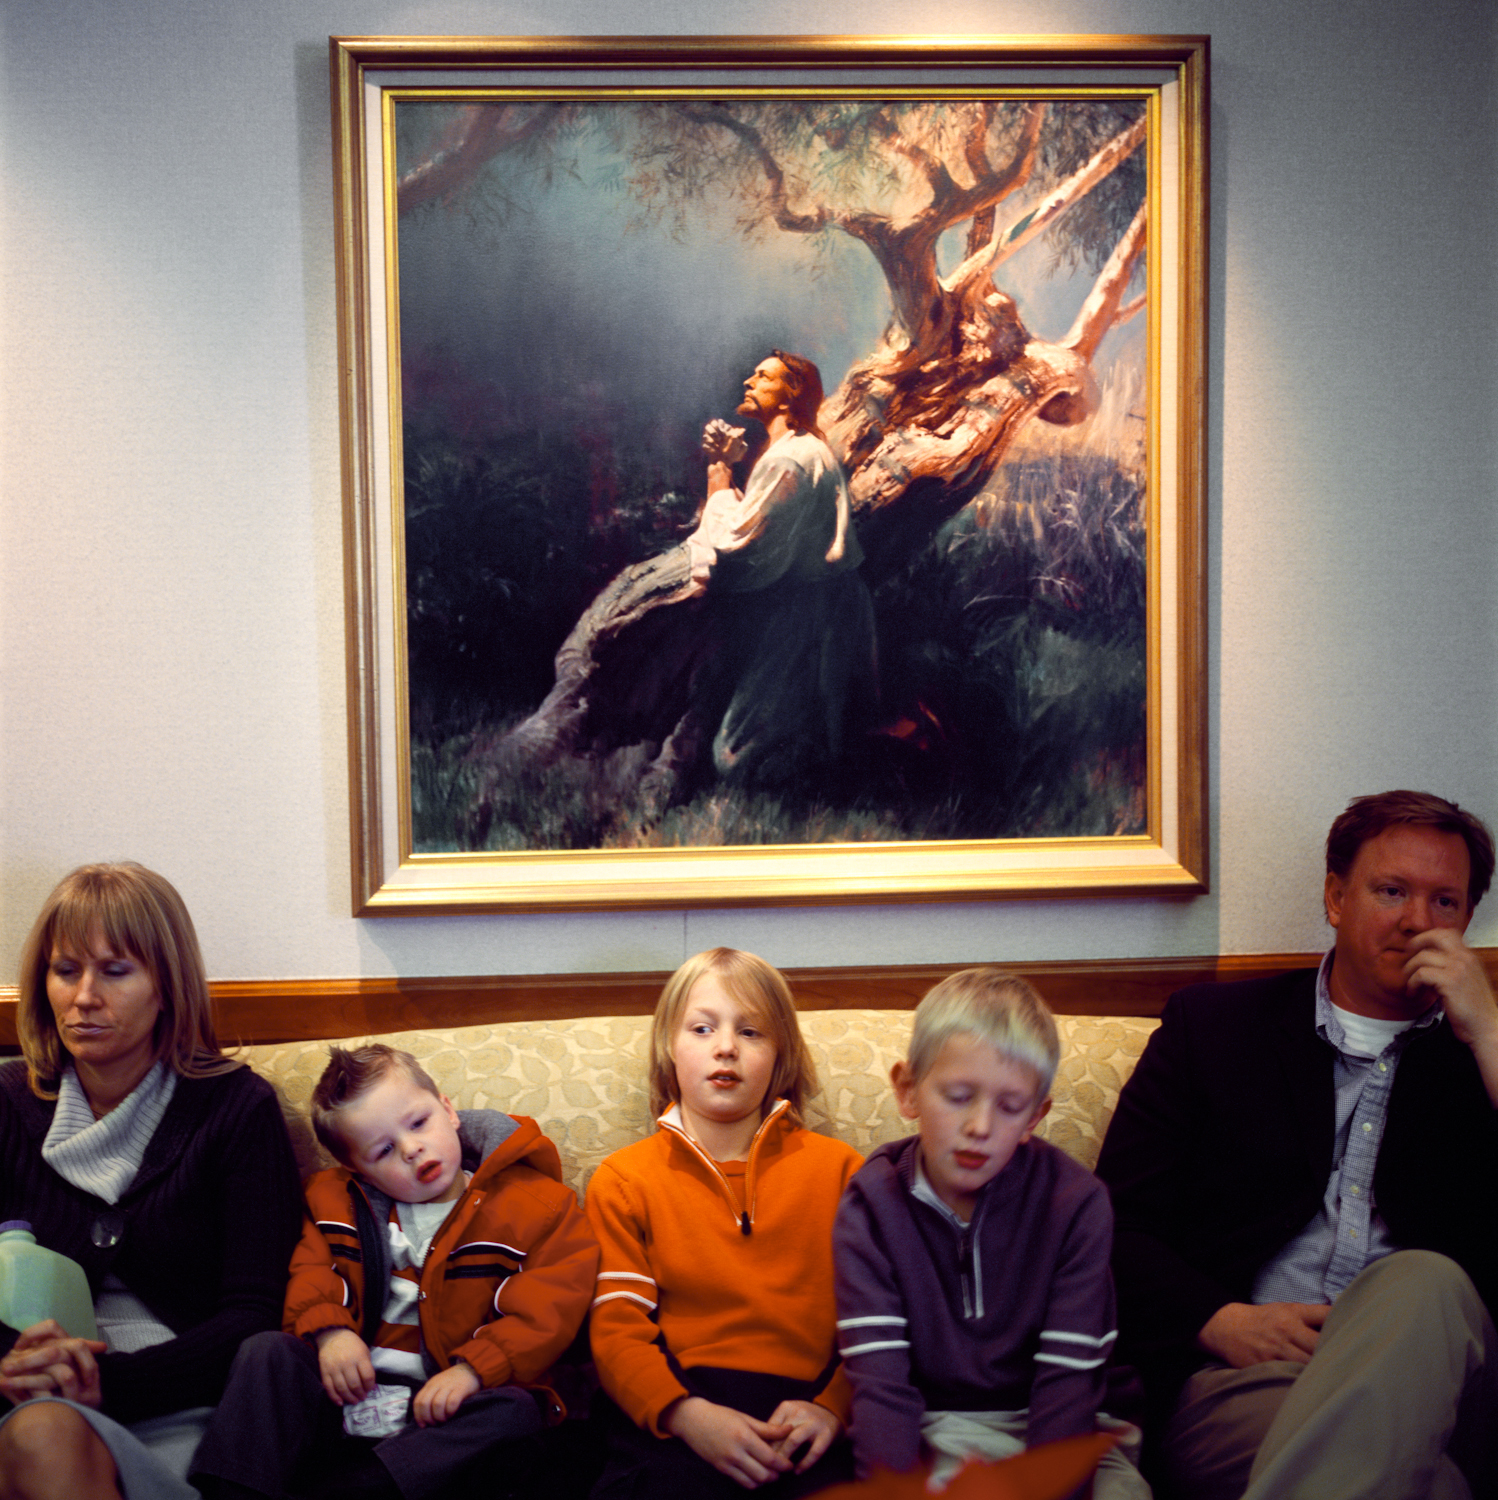 Rachel, my sister, her husband Chris, their two sons and nephew wait in the Timpanogos Temple's reception room during sister Kim's wedding. Due to their sacred nature, the actual wedding ceremony, or sealing, takes places in a separate private ceremonial room. December 2007